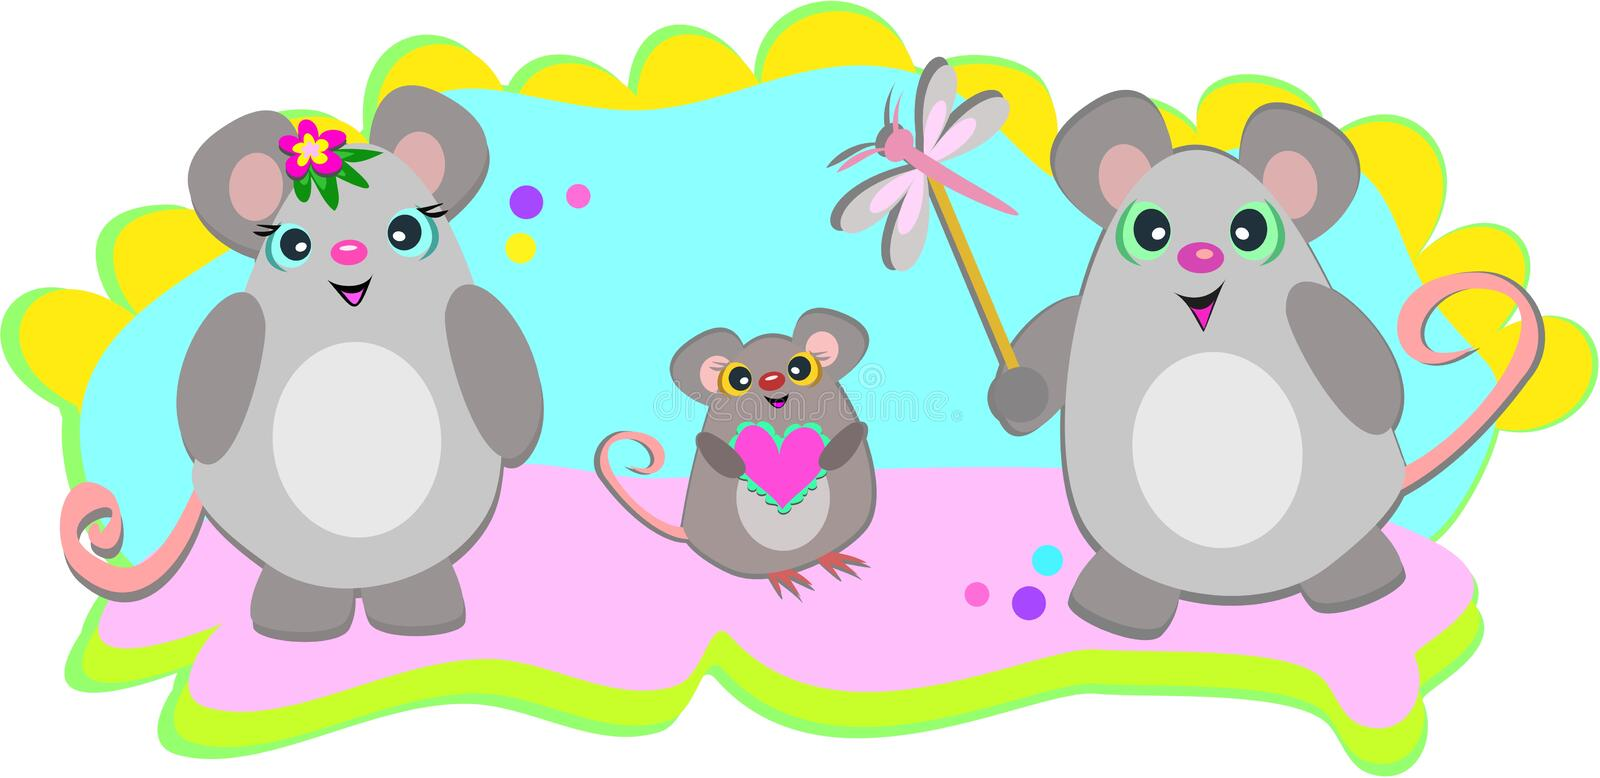 A Family of Mice. Here is a cute family of Mice with colorful decorations royalty free illustration